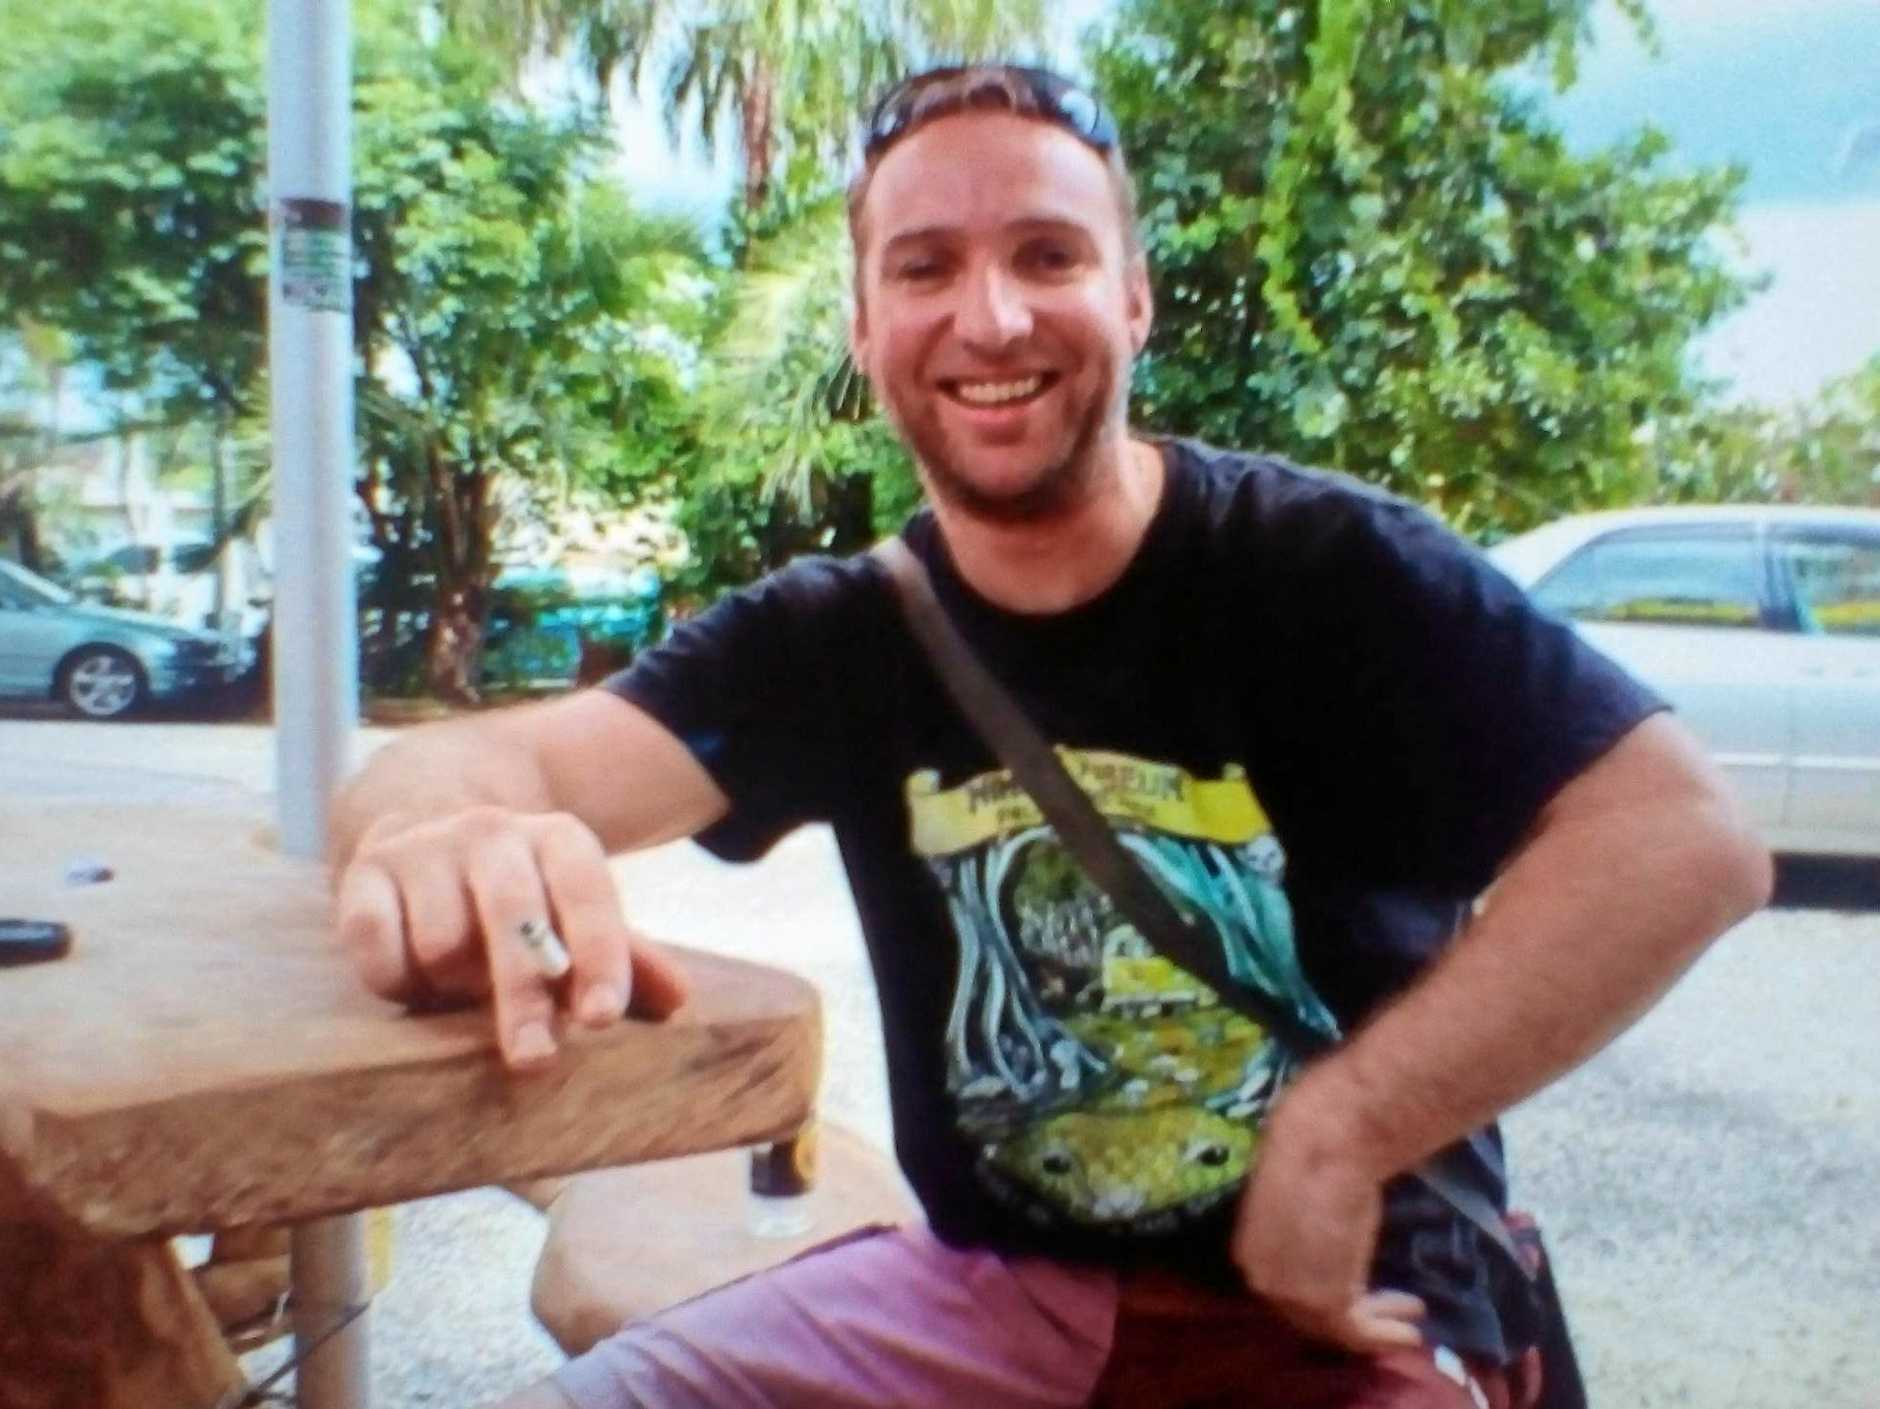 Northern Rivers man Damien Roadley has been reported missing after he went camping at Blue Knob, near Nimbin.